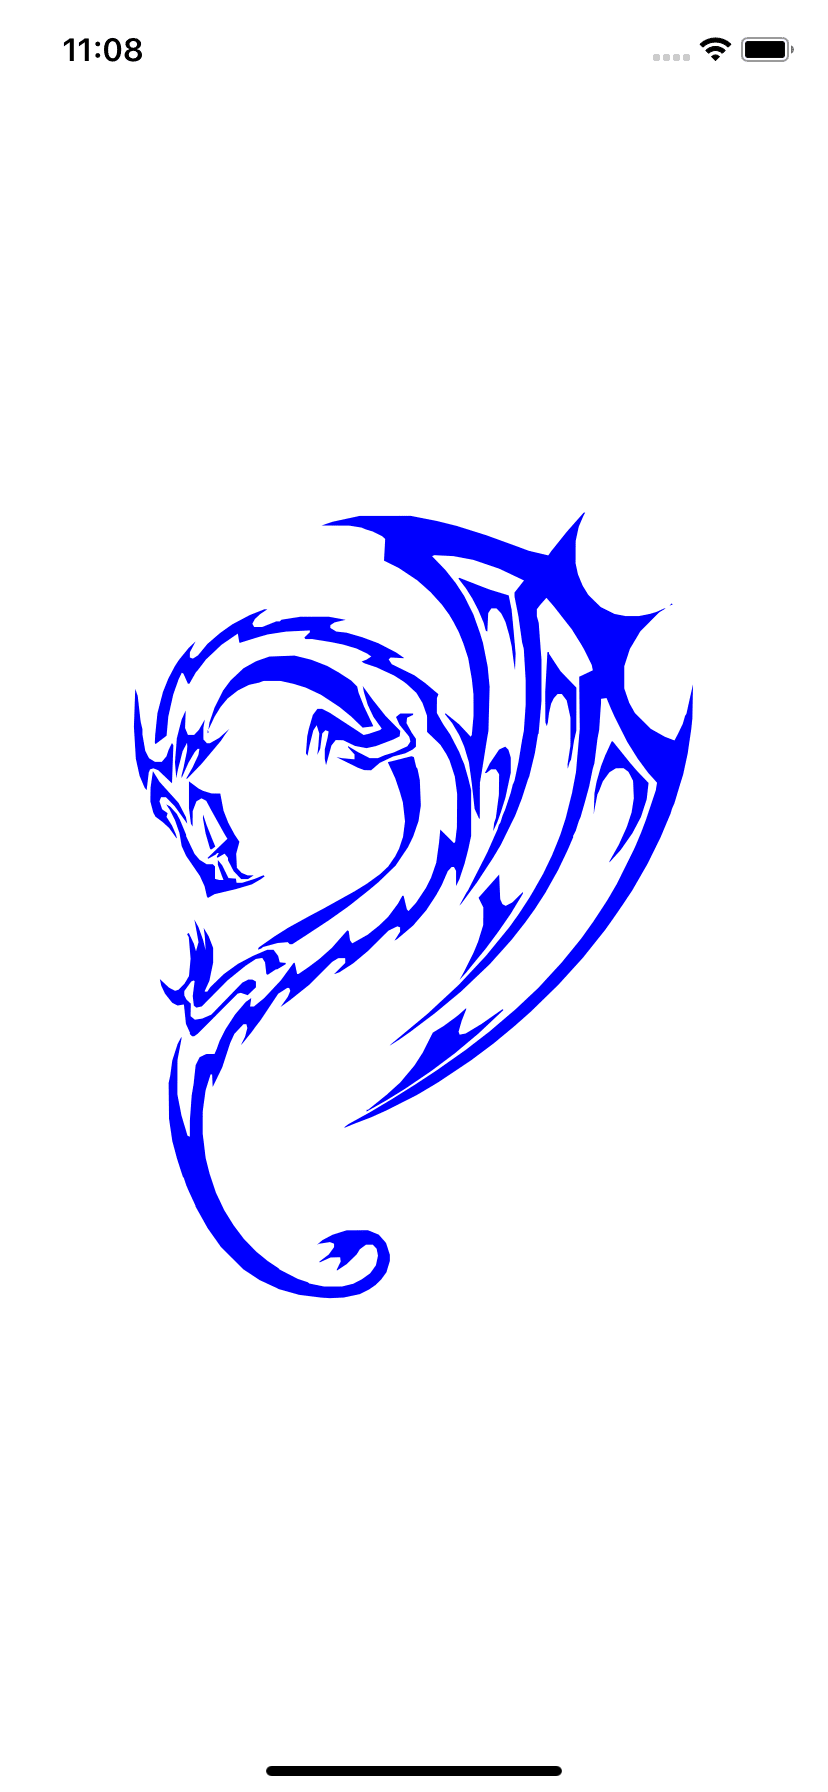 Simulator running our app with our dragon svg file filled with blue